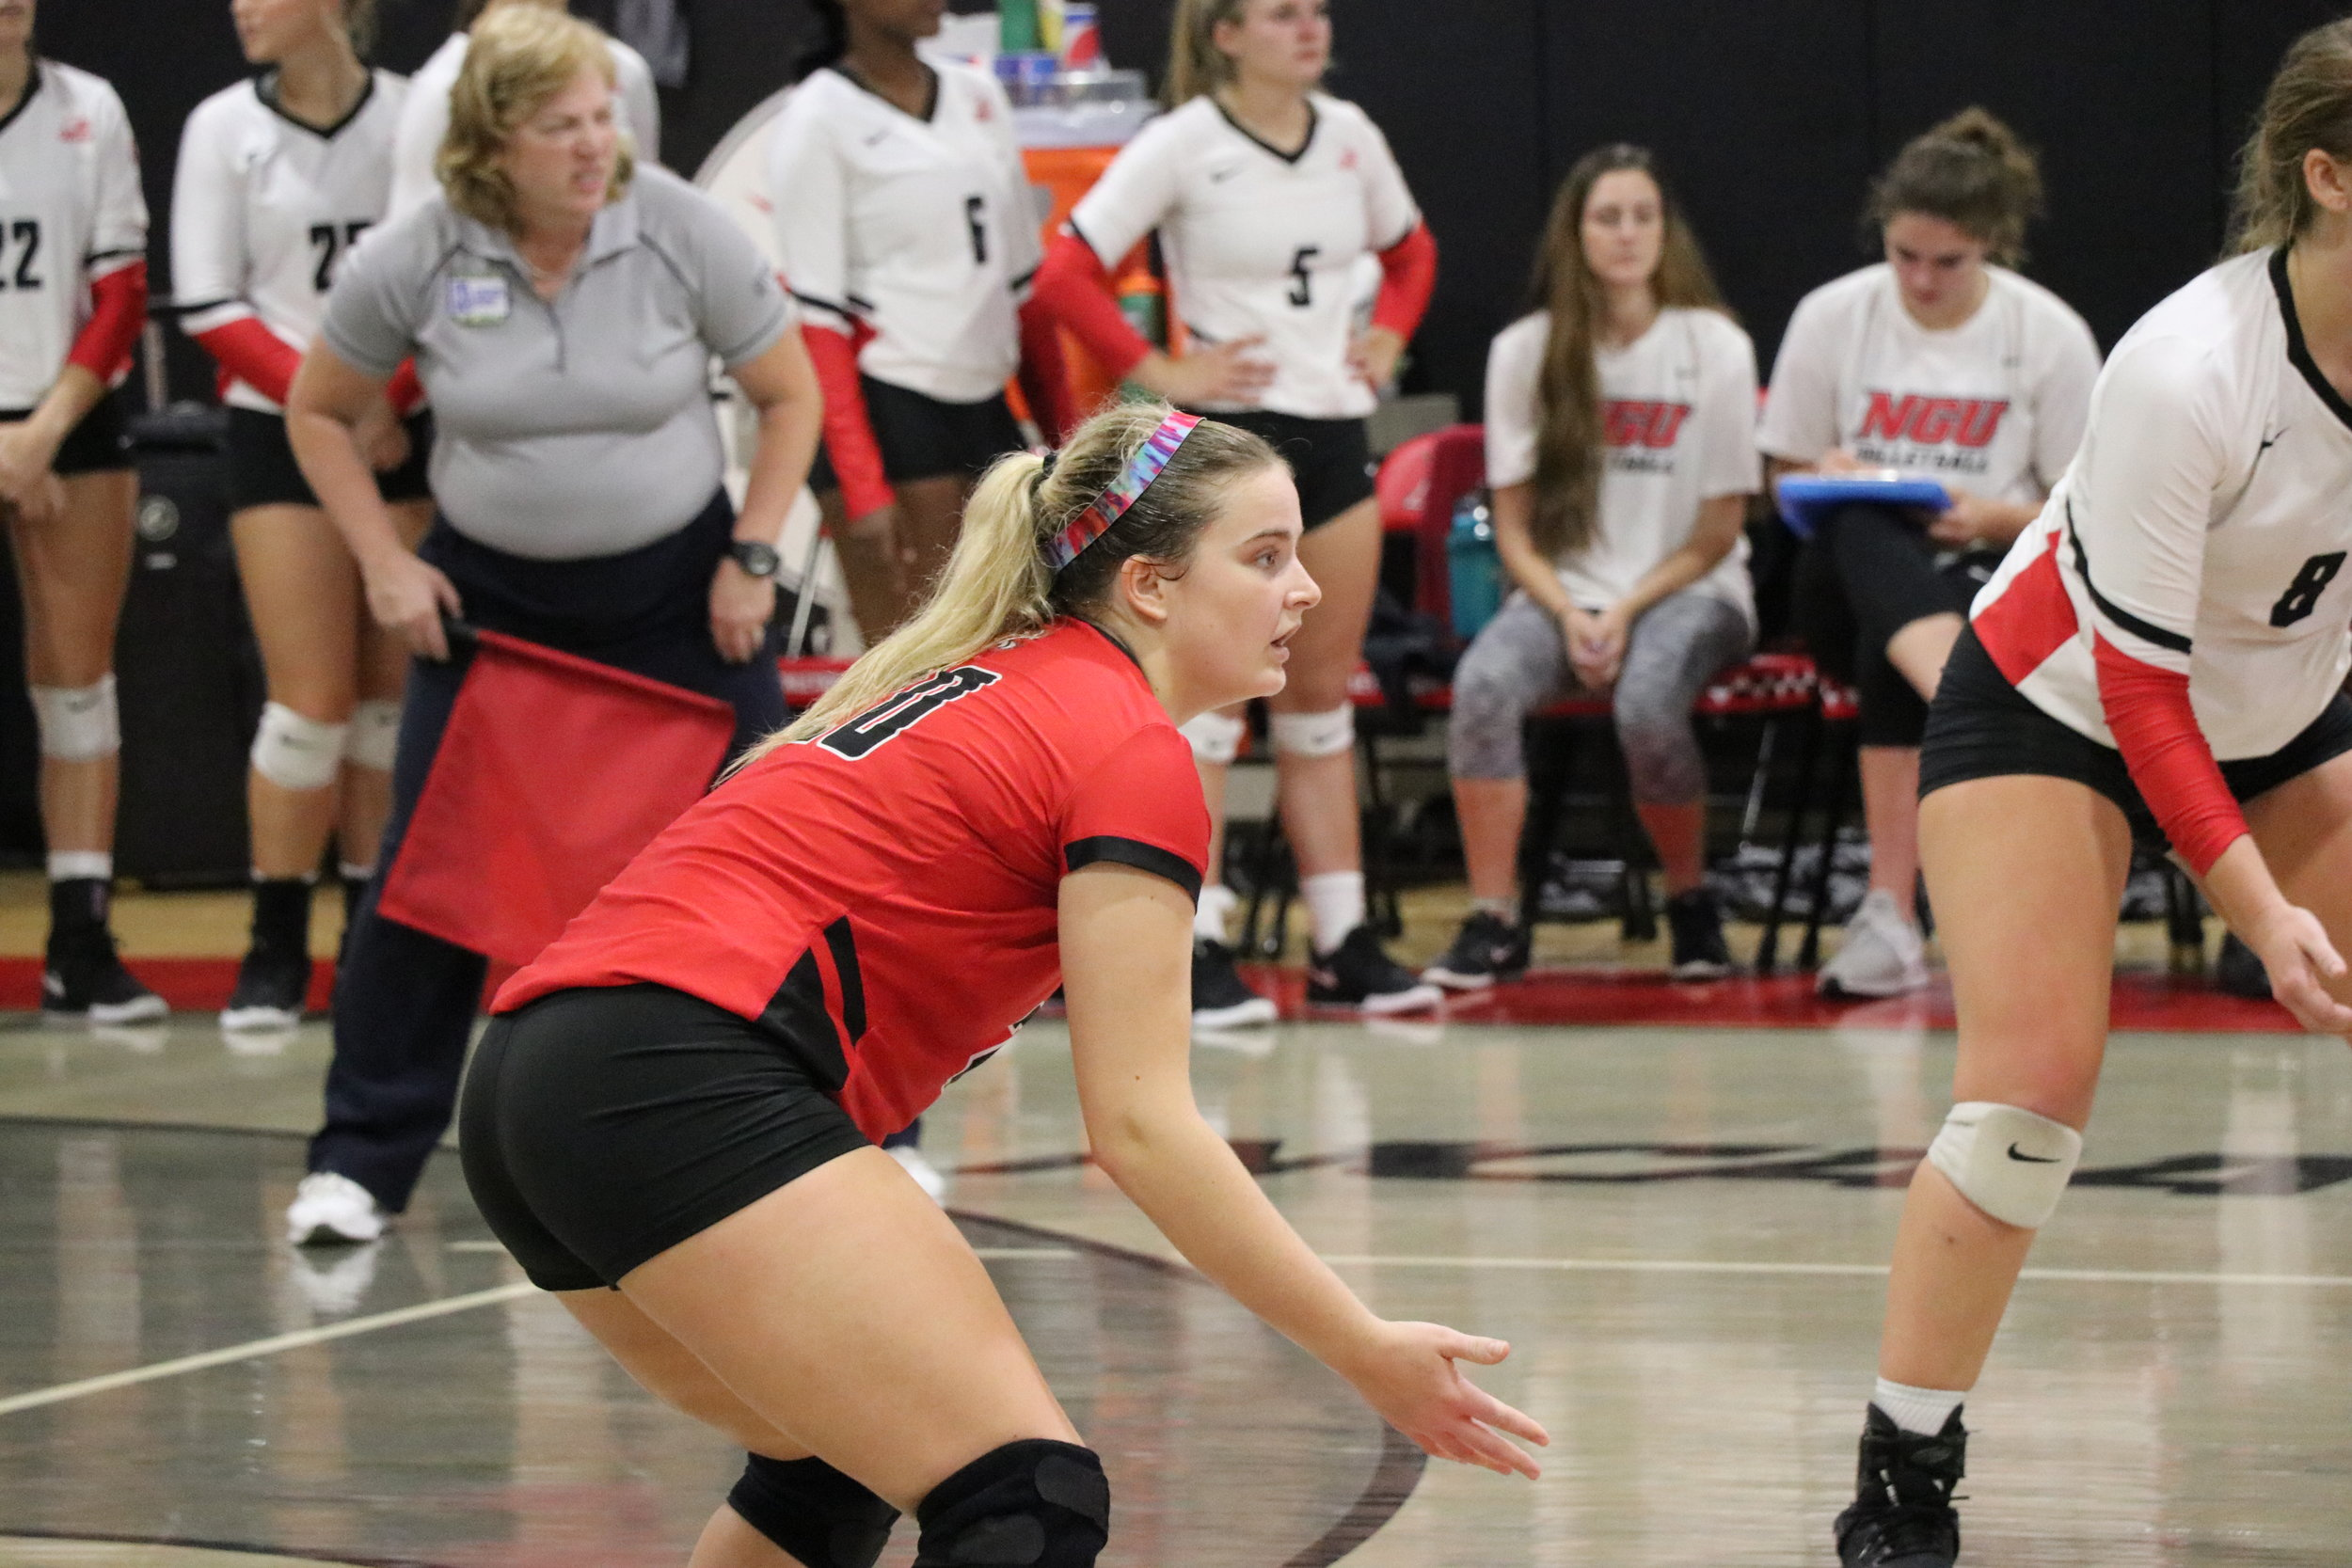 Sophomore, Abby Mumpower (20) is focused during the game.